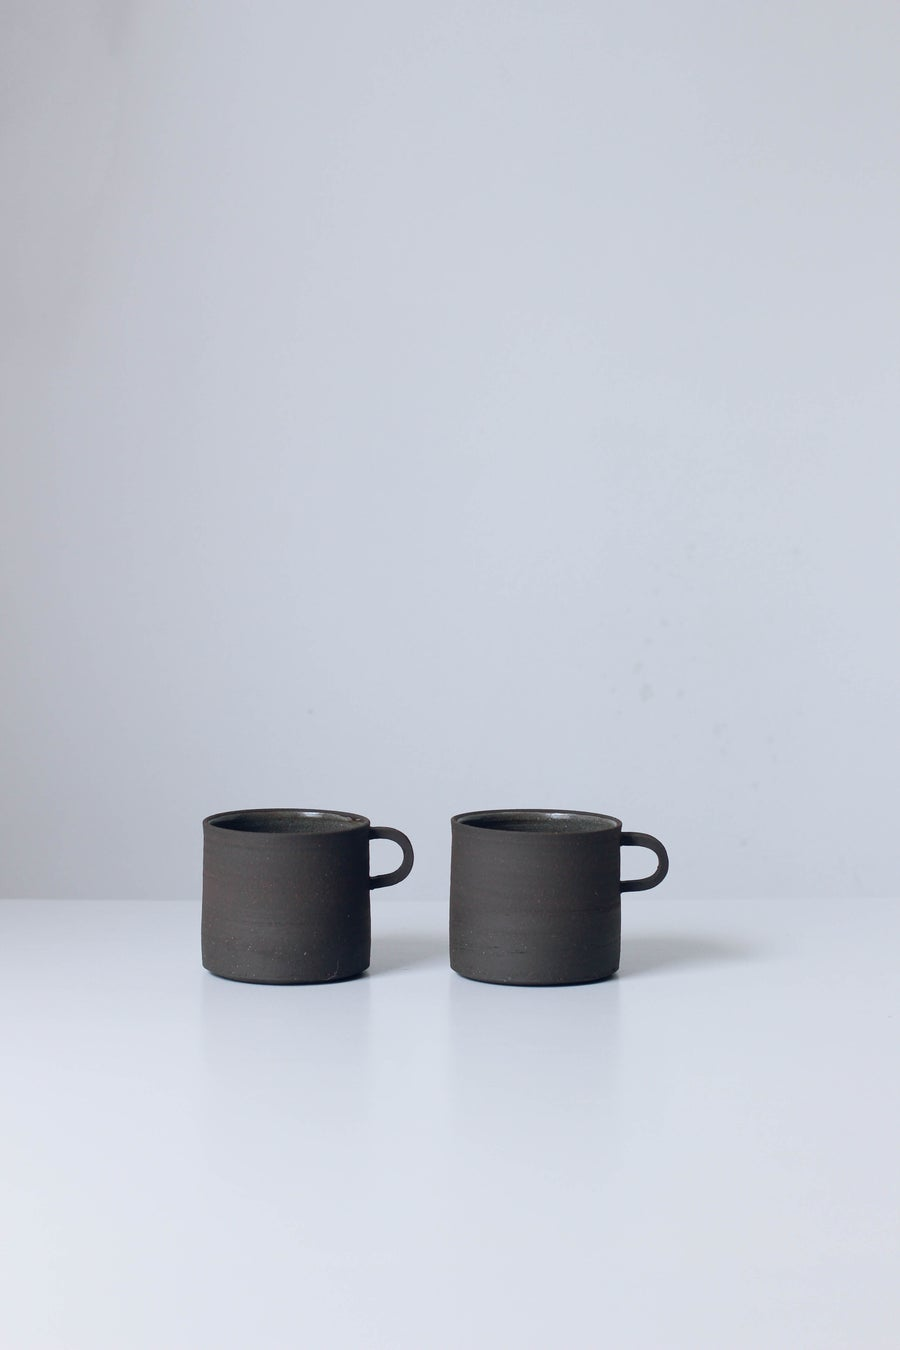 Image of Dark Cup